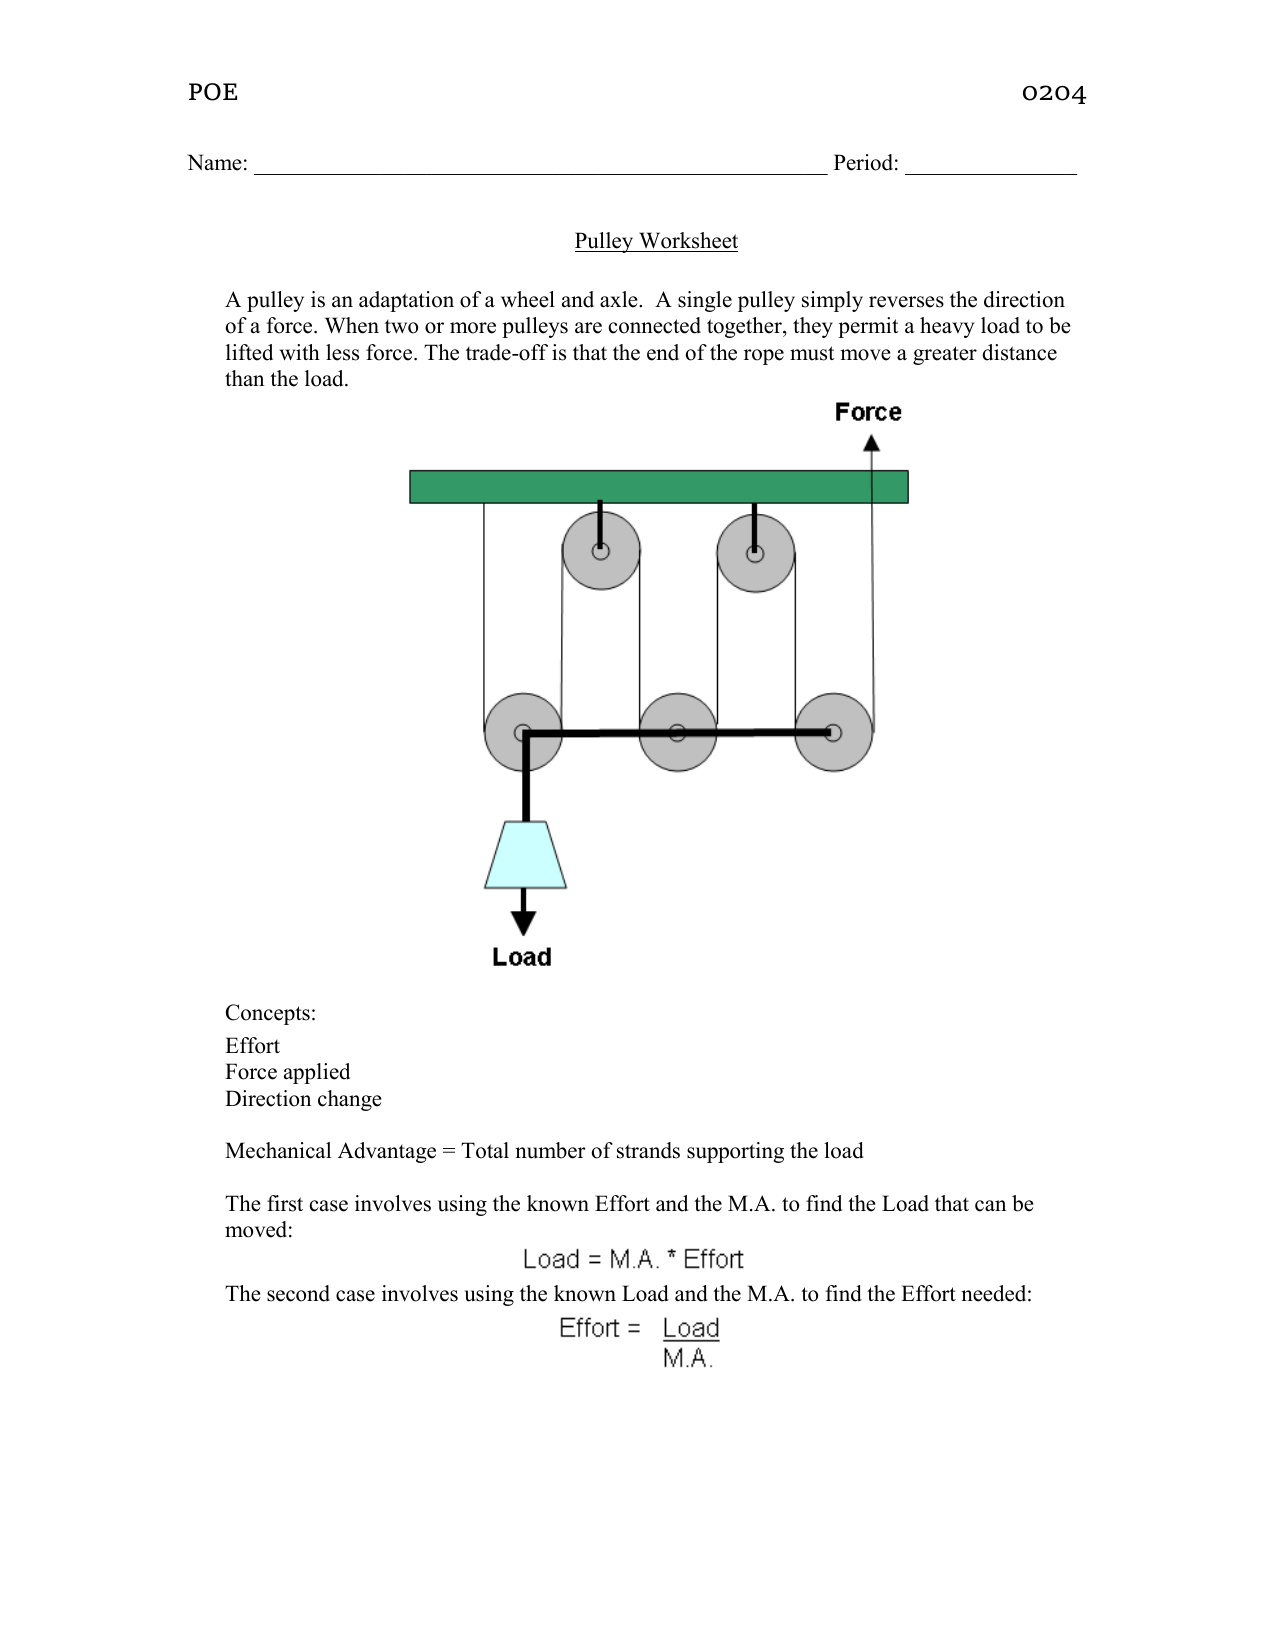 20 Latest Simple Machines Pulley System Worksheet